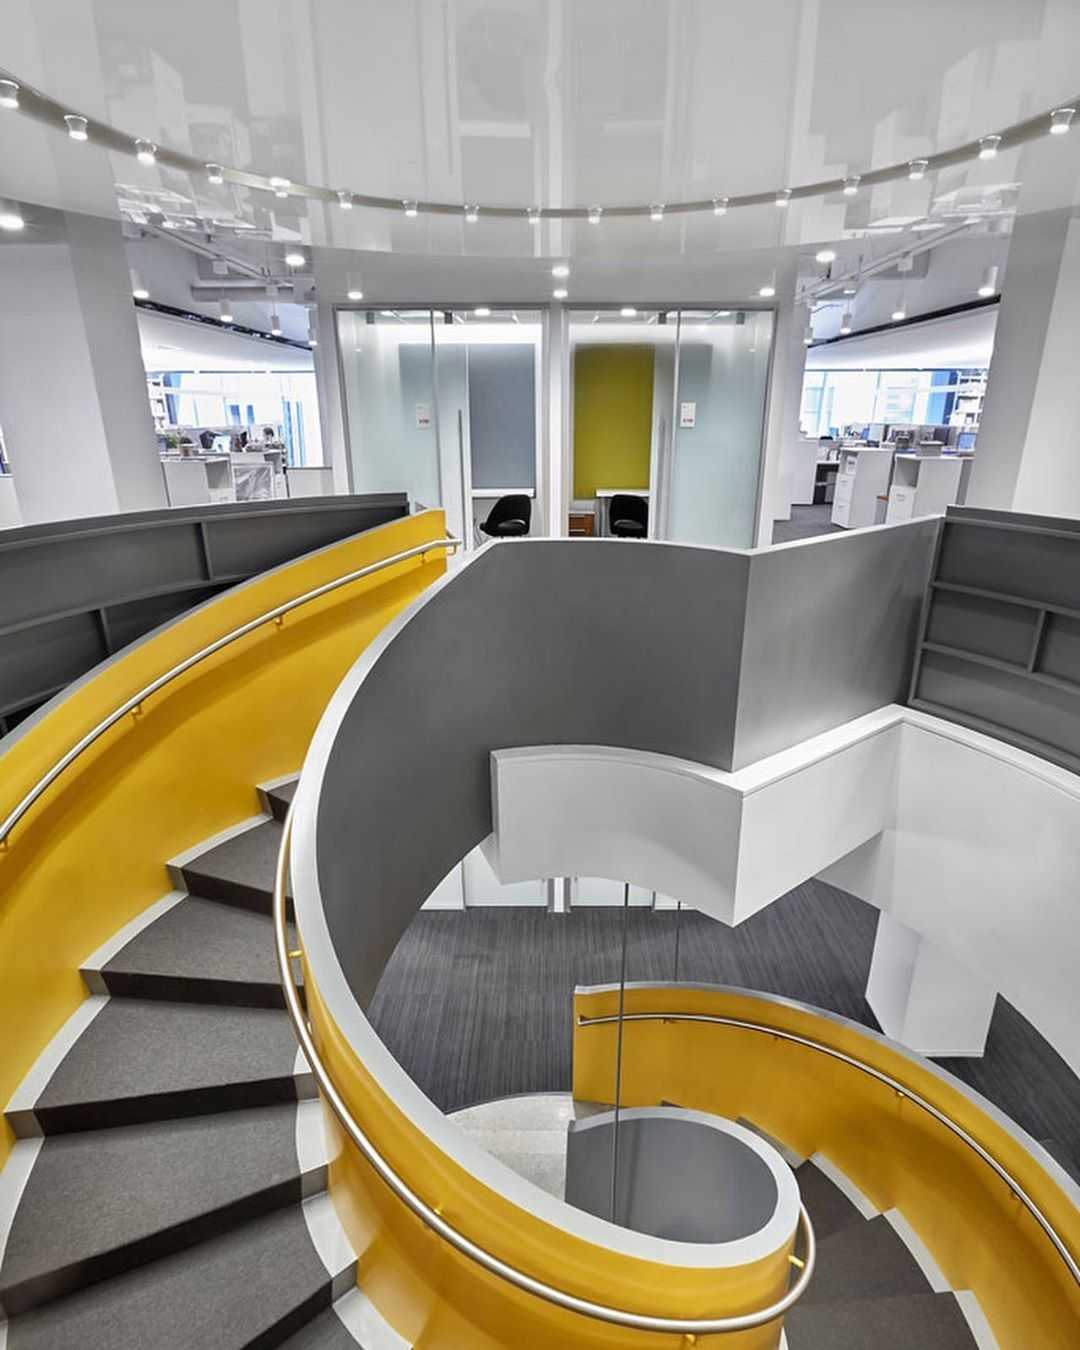 Reflective Laquer Ceiling Hachette Book Group New York Ny Stairs Design Design Strategy Interior Furniture